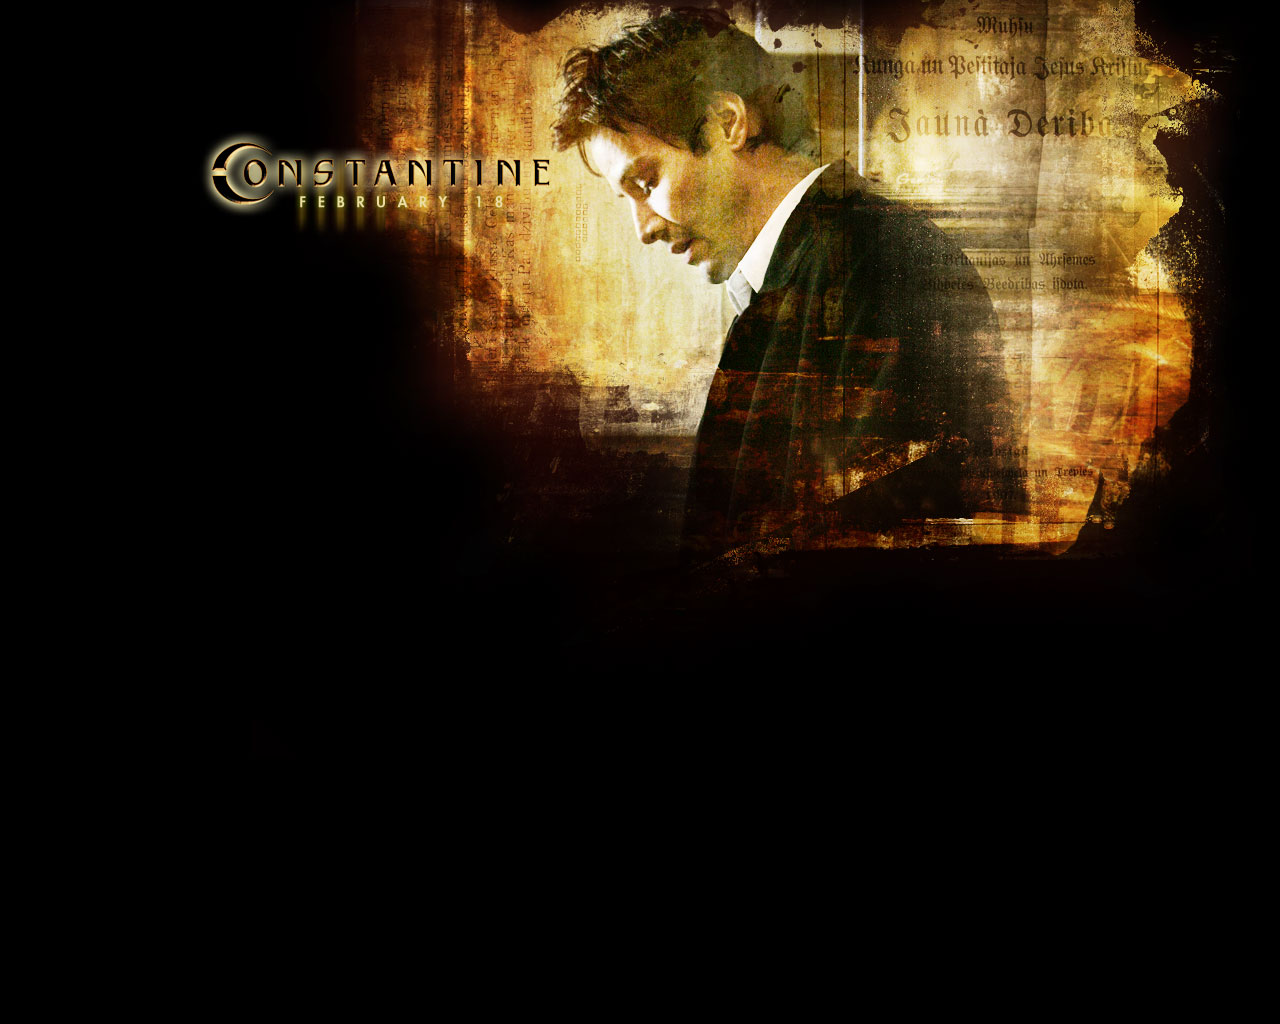 Constantine Movie Best Quality Hd Wallpapers - All Hd -8841